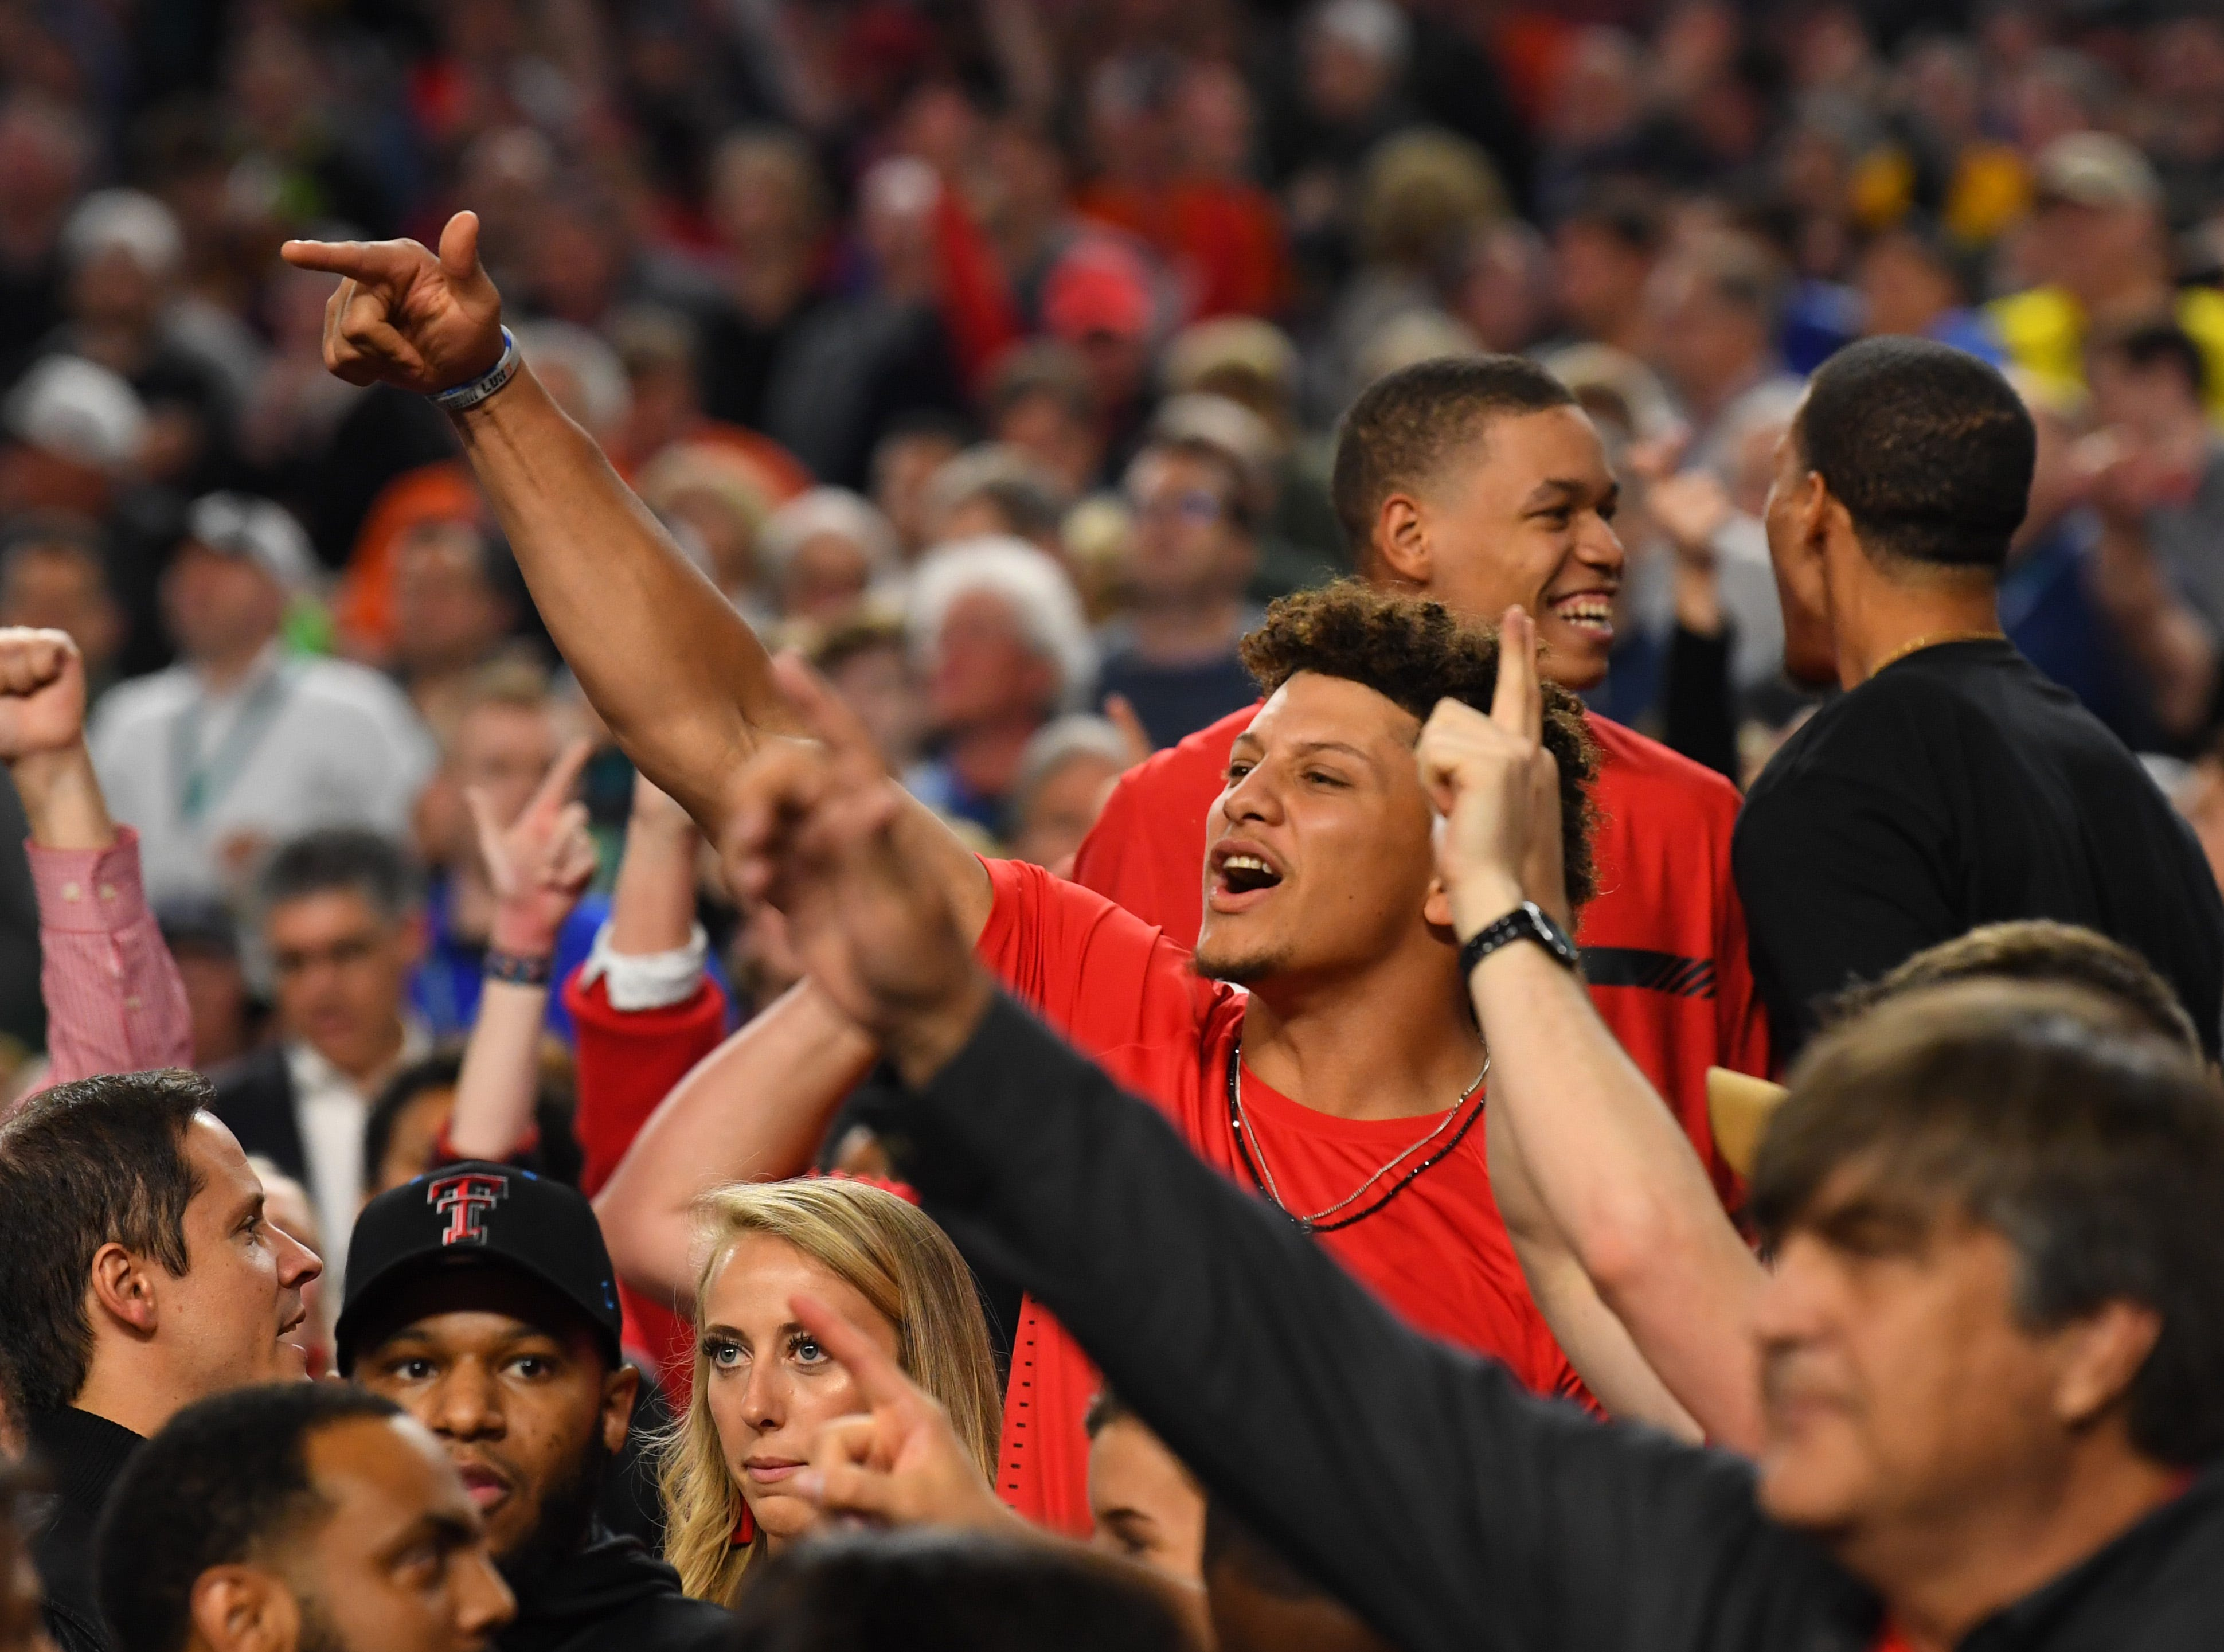 Apr 6, 2019; Minneapolis, MN, USA; Kanas City Chiefs quarterback and former Texas Tech football player Pat Mahomes cheers in the stands against the Michigan State Spartans in the semifinals of the 2019 men's Final Four at US Bank Stadium. Mandatory Credit: Robert Deutsch-USA TODAY Sports